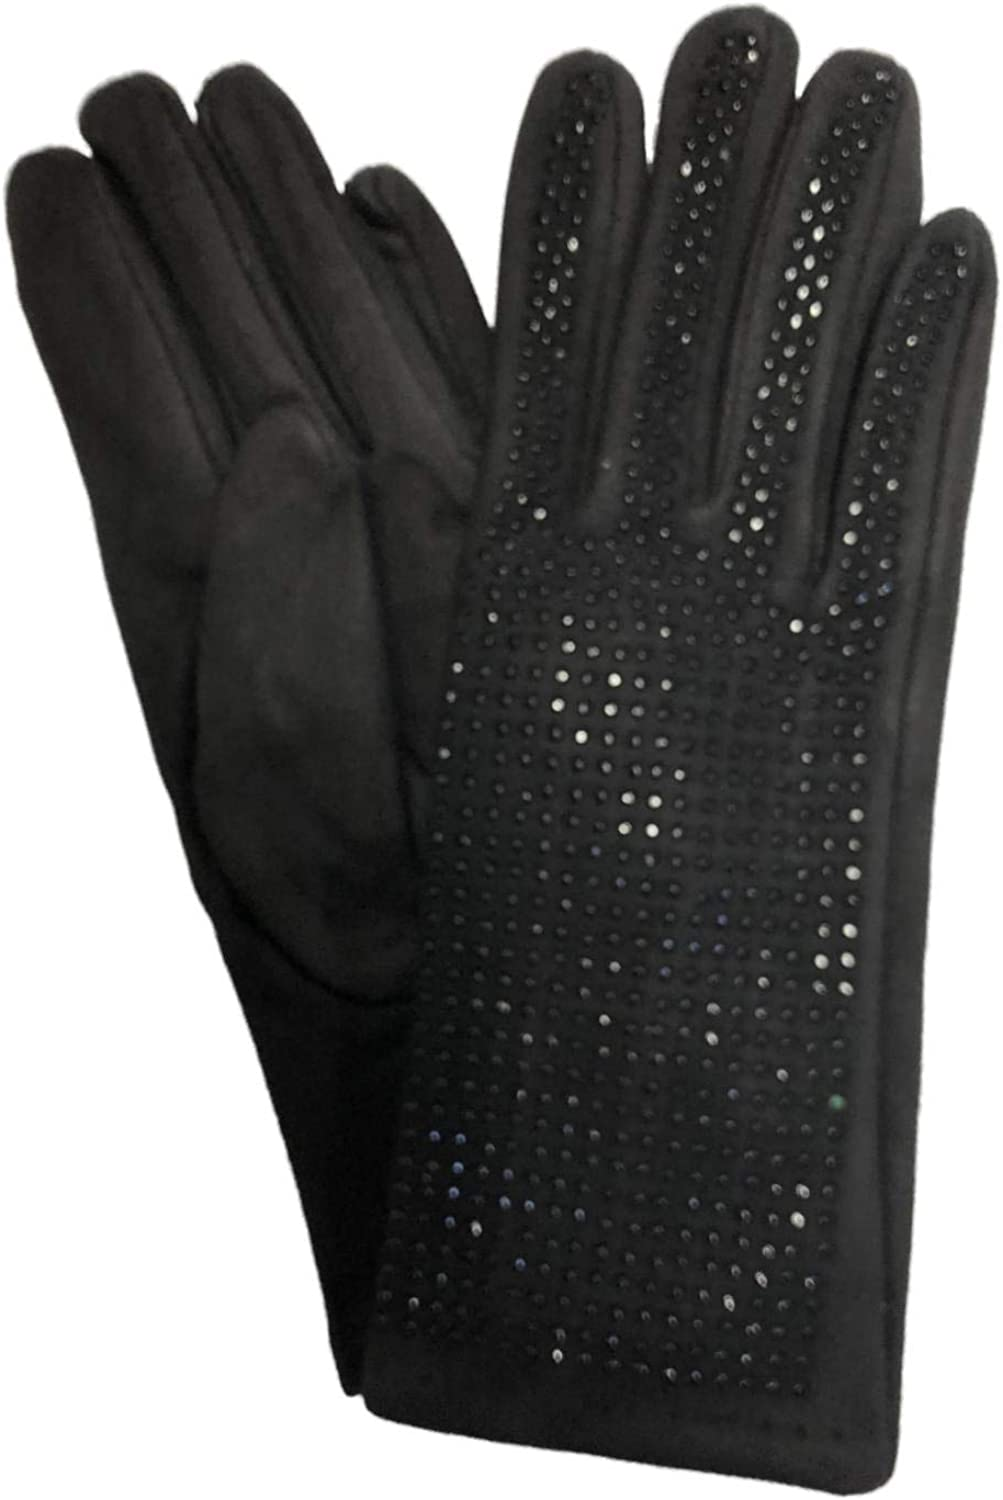 Womens Black Rhinestone Sparkle Stretch Fit Texting & Tech Touchscreen Gloves